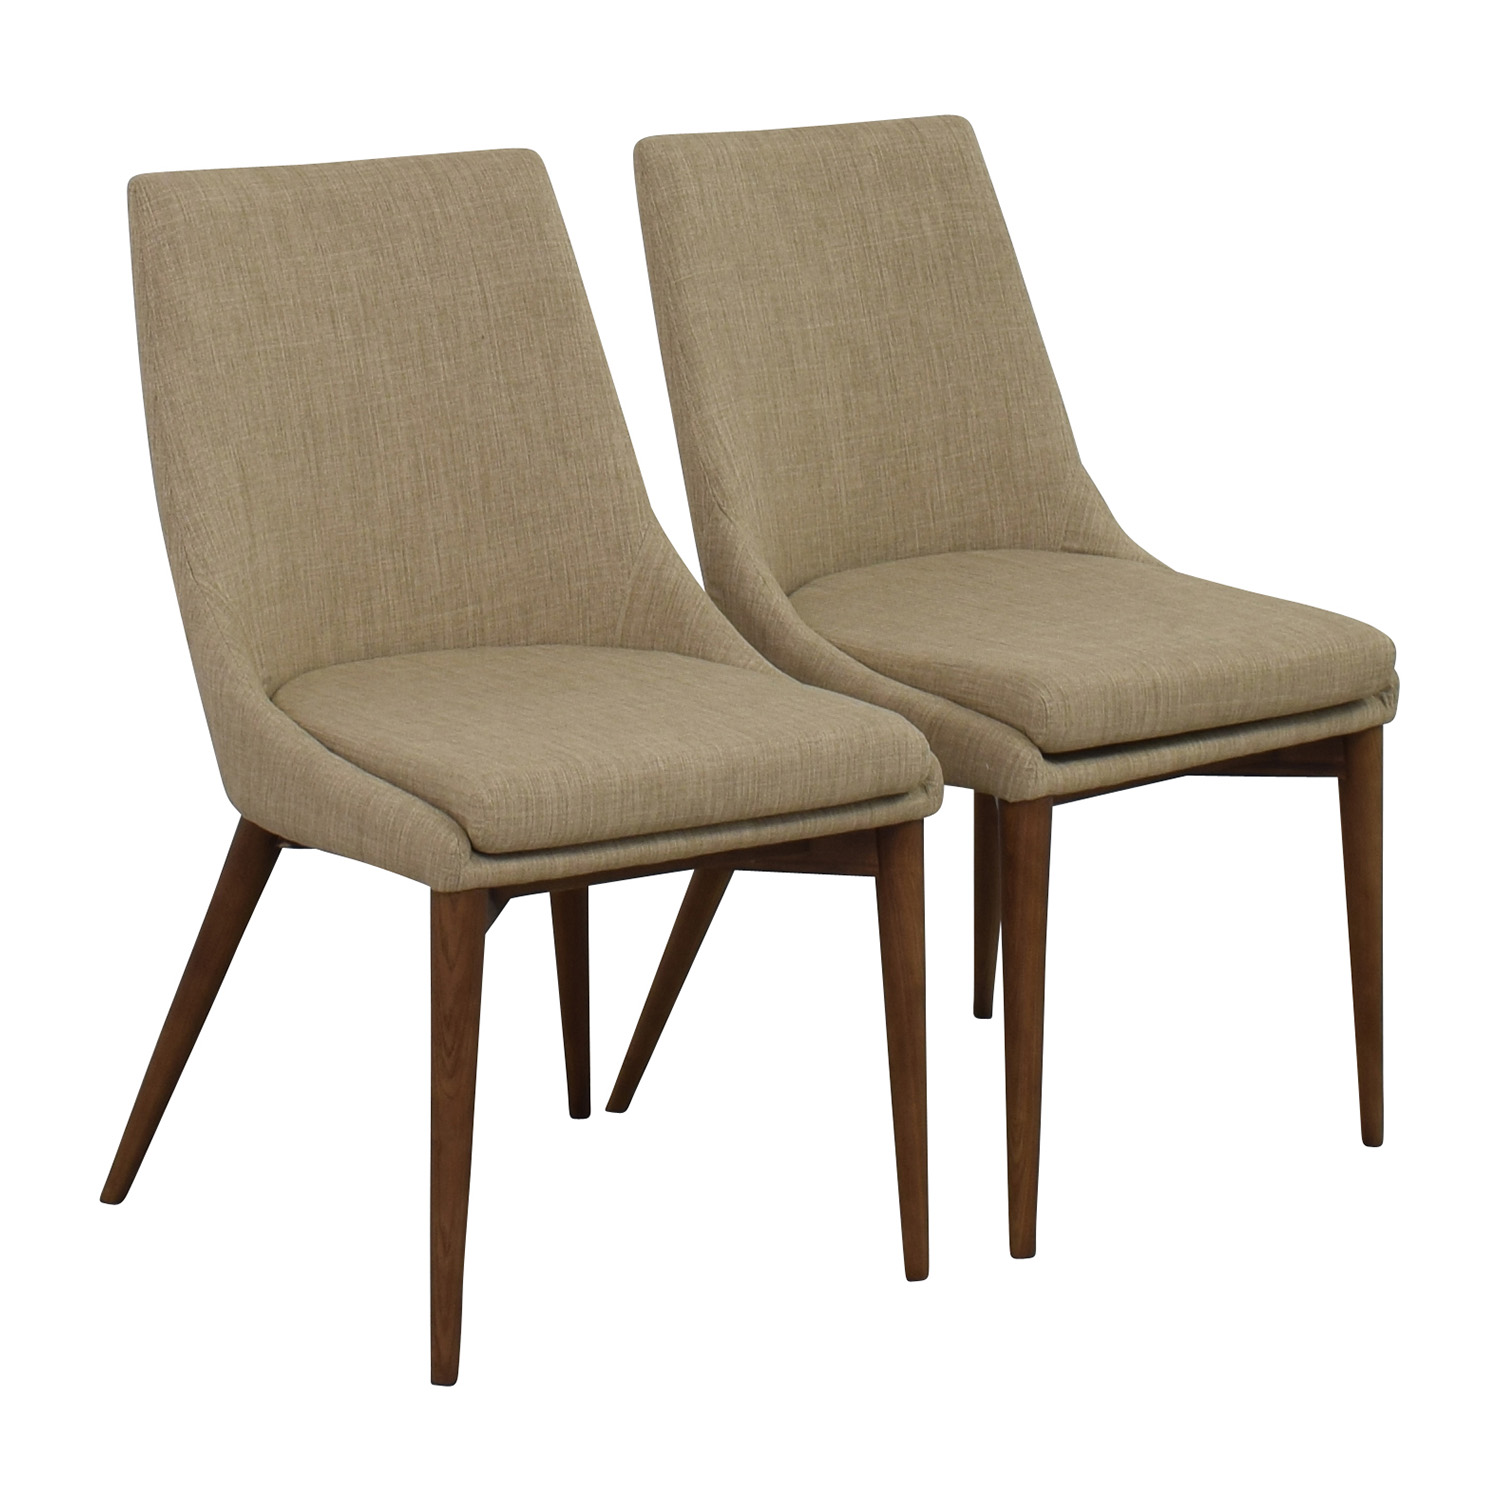 ... InMod InMod Beige Calais Side Chairs Dimensions ...